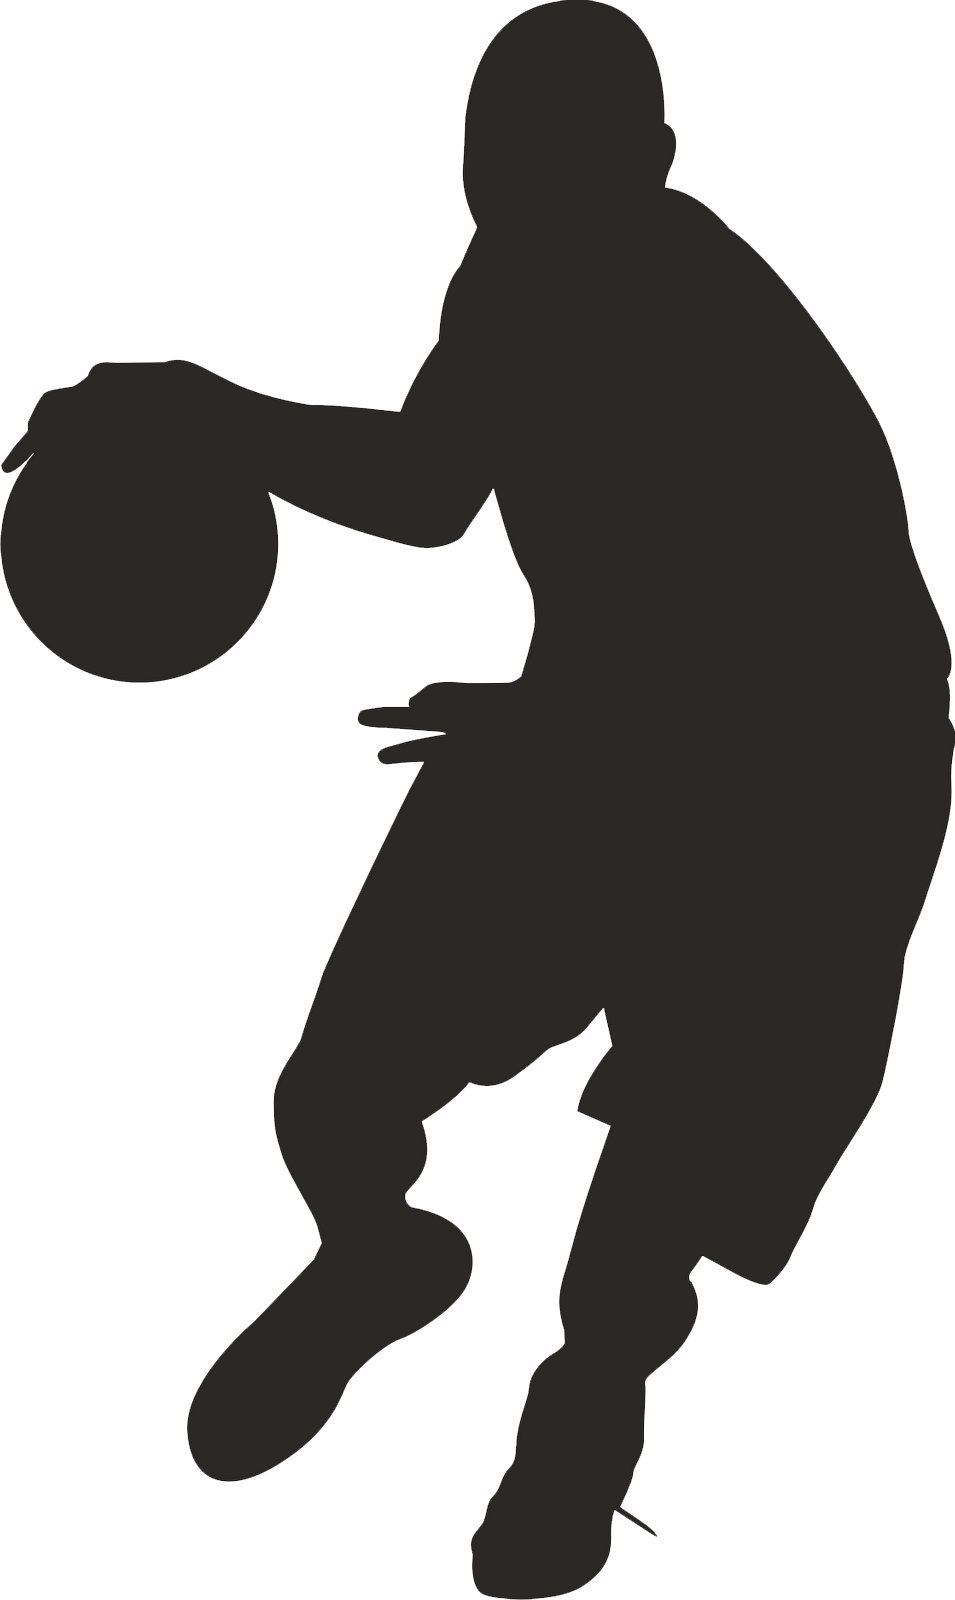 Clipart basketball players clip art library library Silhouette Basketball Players at GetDrawings.com | Free for personal ... clip art library library